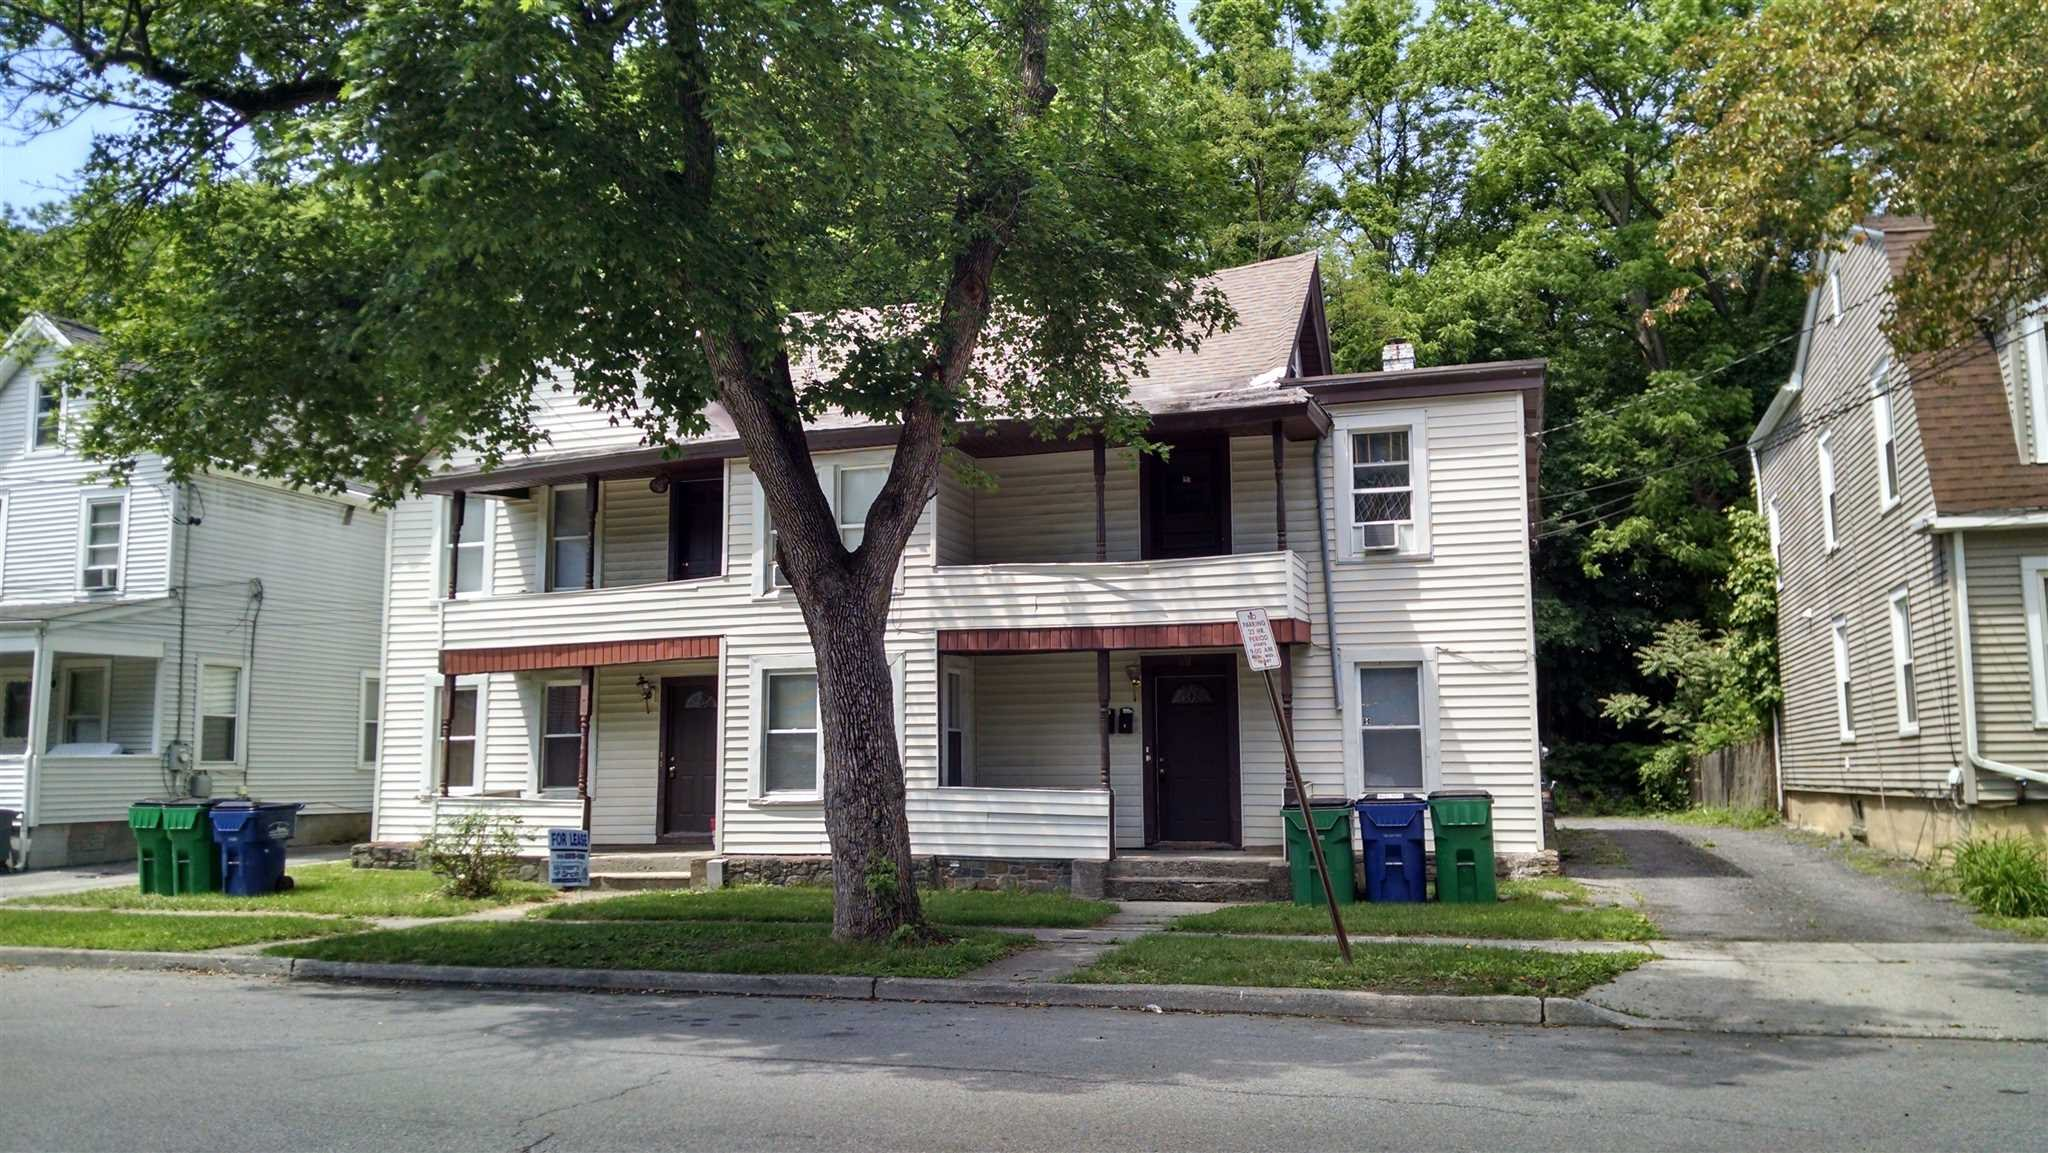 Single Family Home for Rent at 60 TAYLOR Avenue 60 TAYLOR Avenue Poughkeepsie, New York 12601 United States